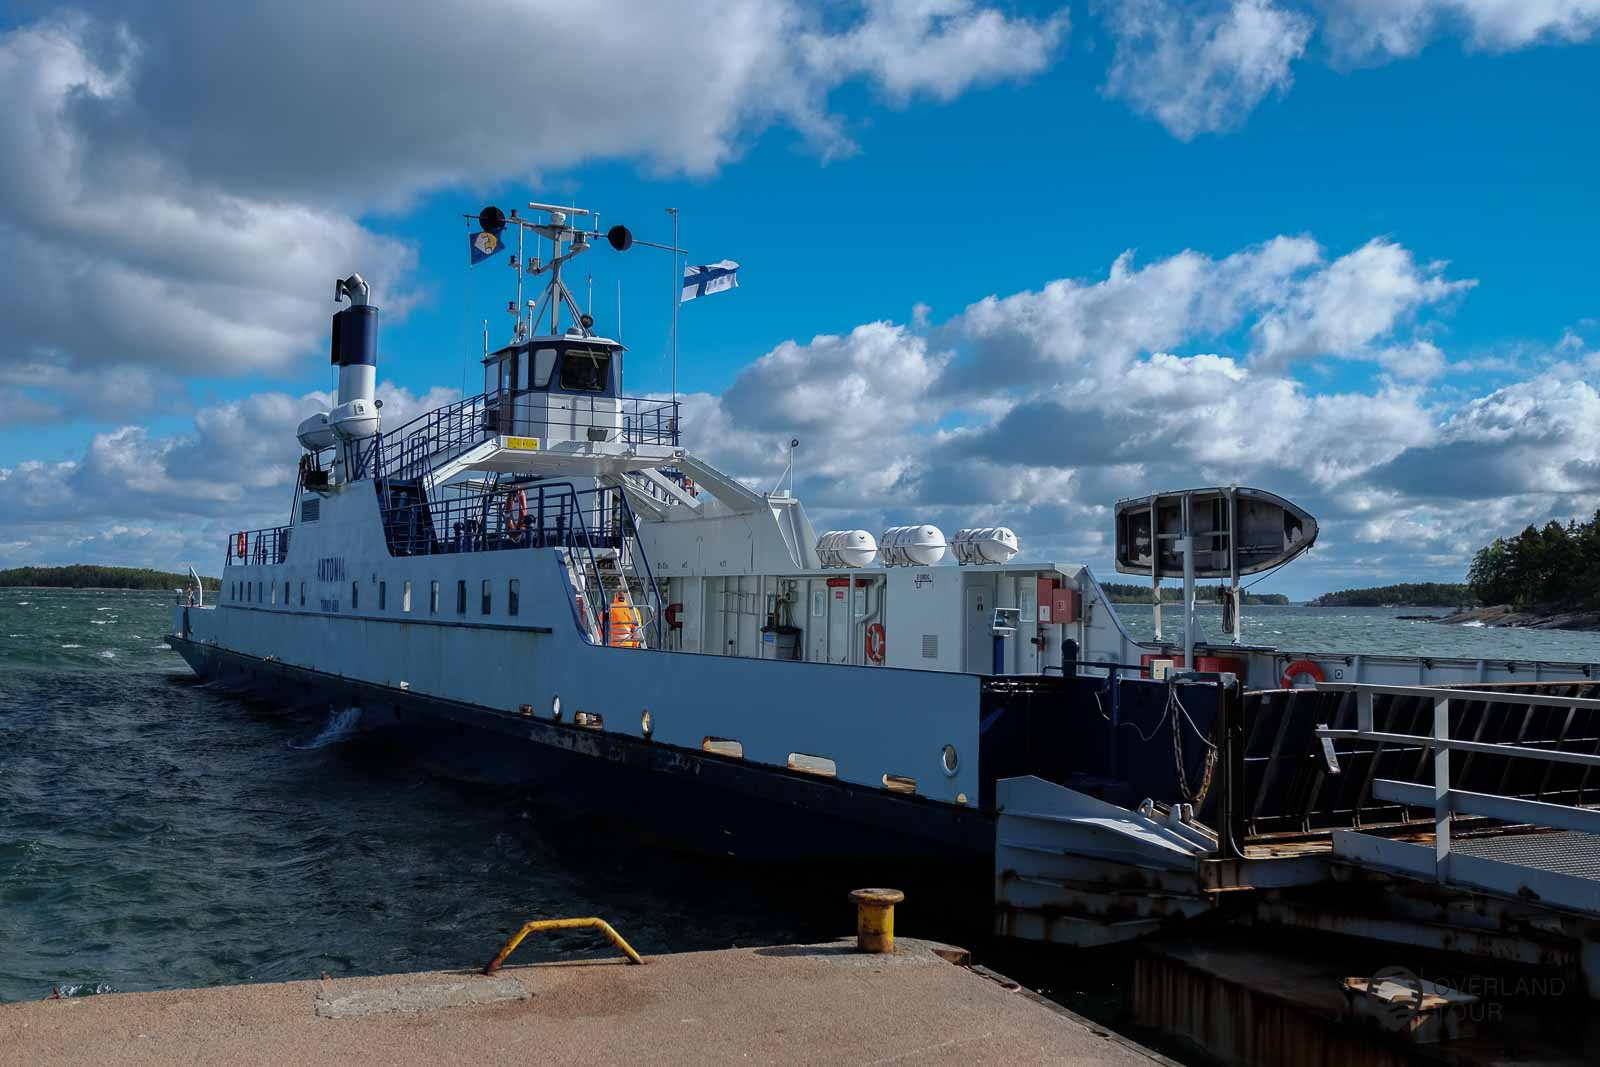 The ferry from Houtskär (ferrypier Mossala) - Iniö (ferrypierdalen) is only open during the summer and closes the Archipelago Trail